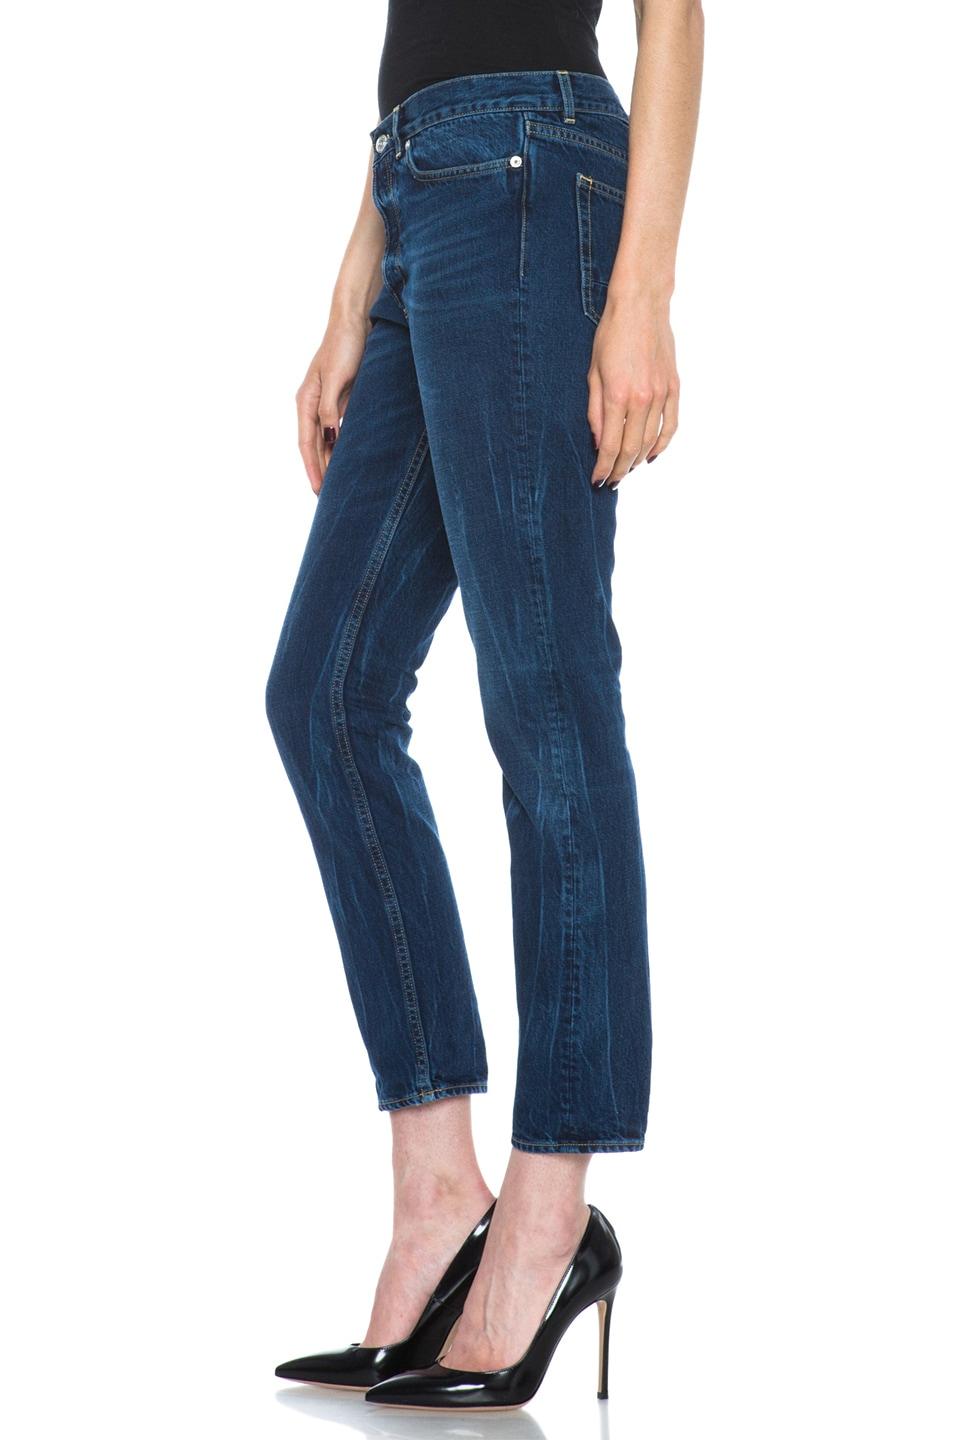 Image 2 of Golden Goose Jeans Dark Wash in Blue